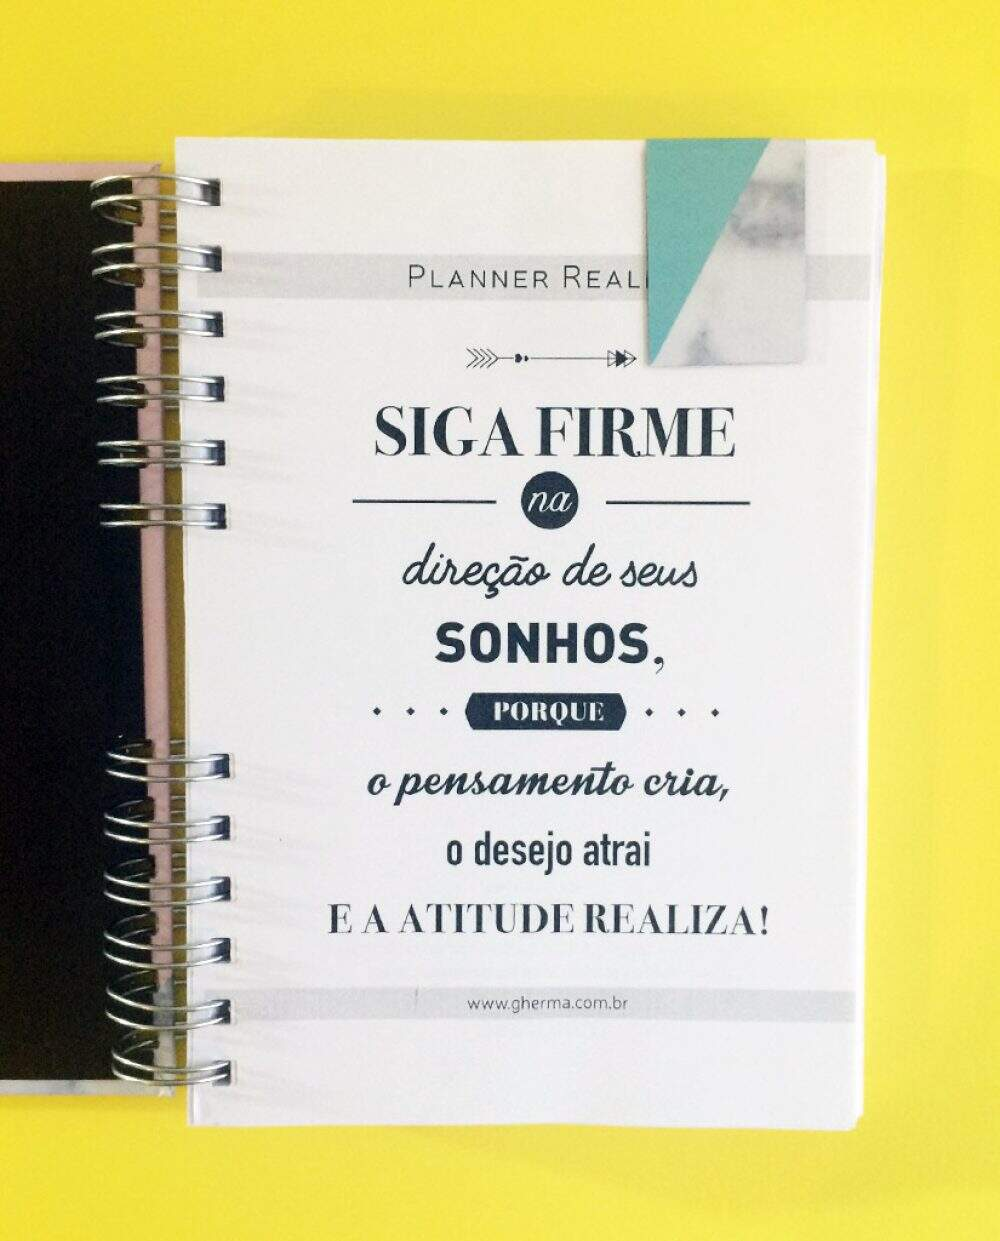 Planner Planner Realize - Miolo I